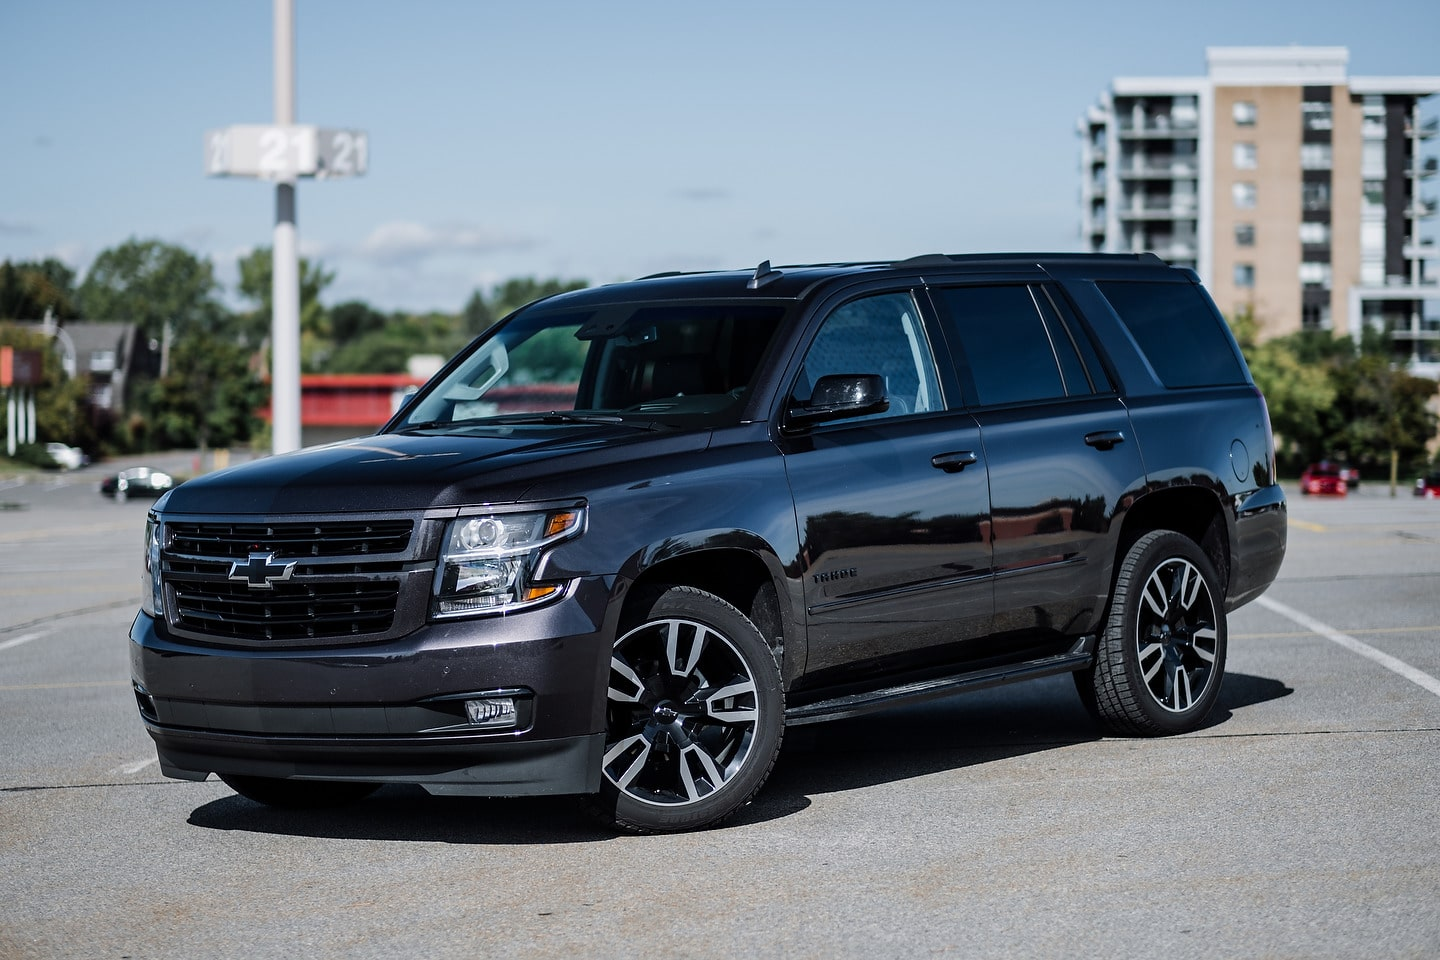 2019 Ford Expedition vs 2019 Chevrolet Tahoe Quick ...